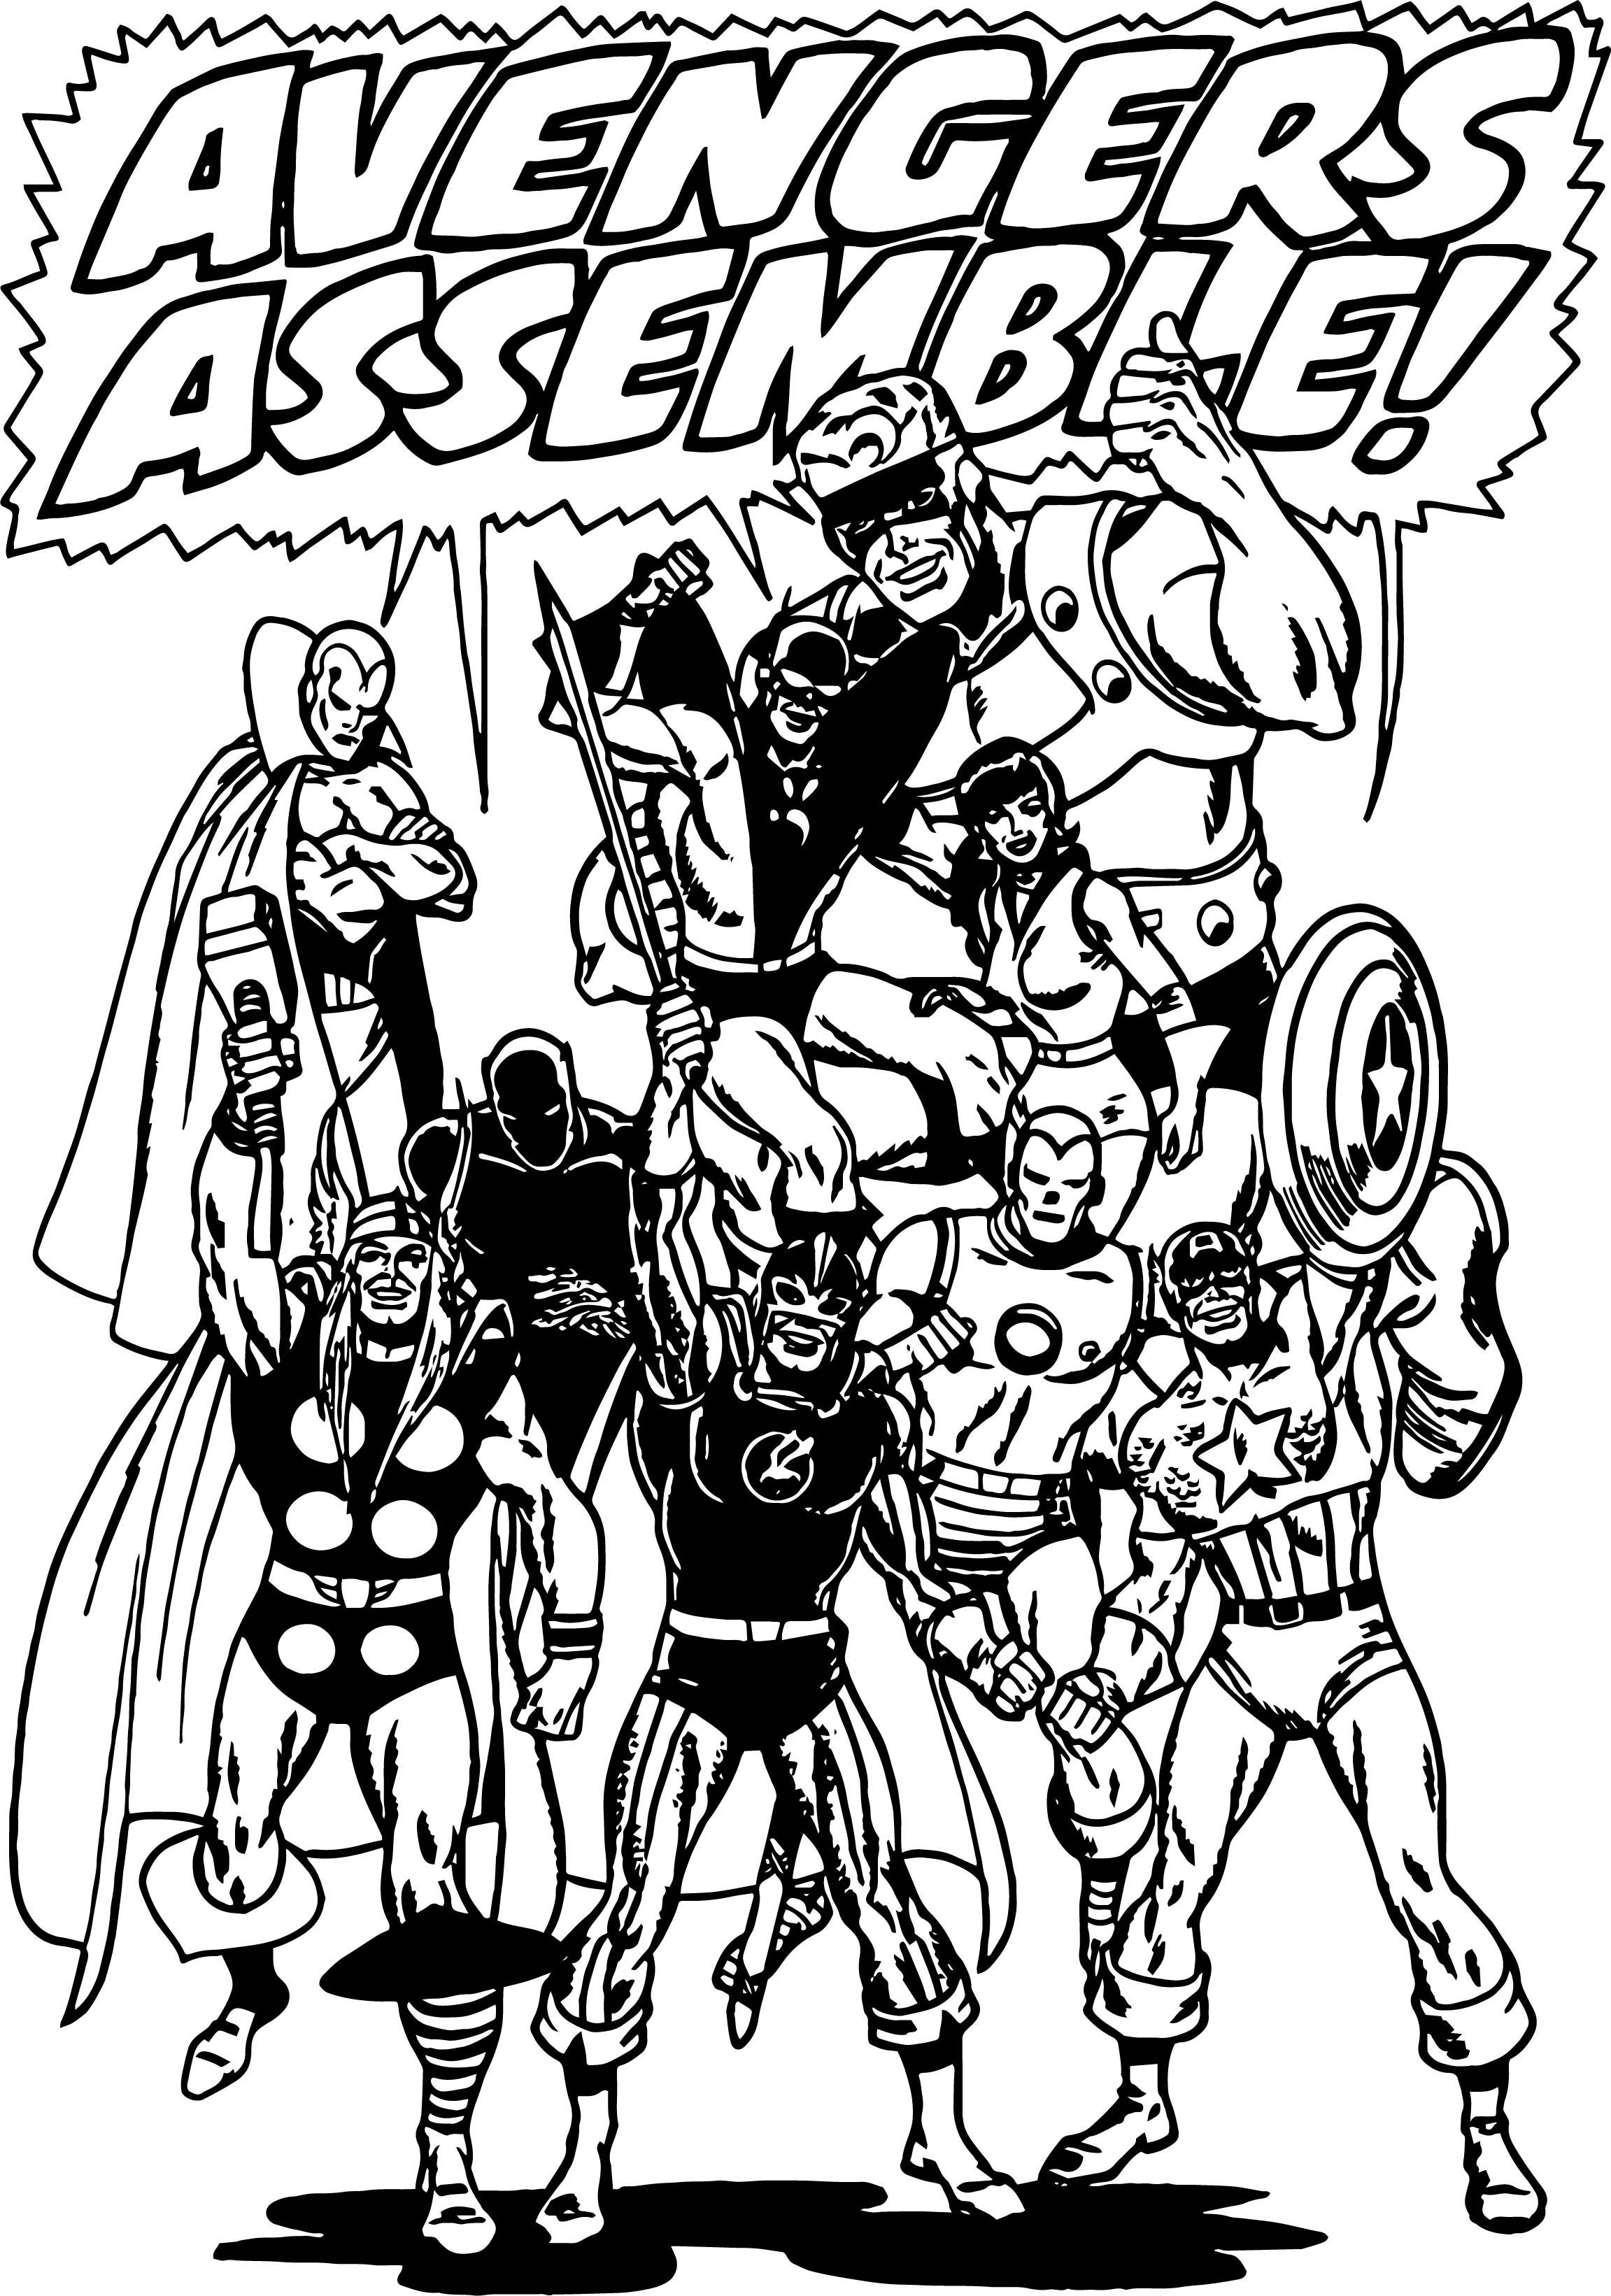 Awesome Avengers Assemble Coloring Page Avengers Coloring Pages Avengers Coloring Turtle Coloring Pages